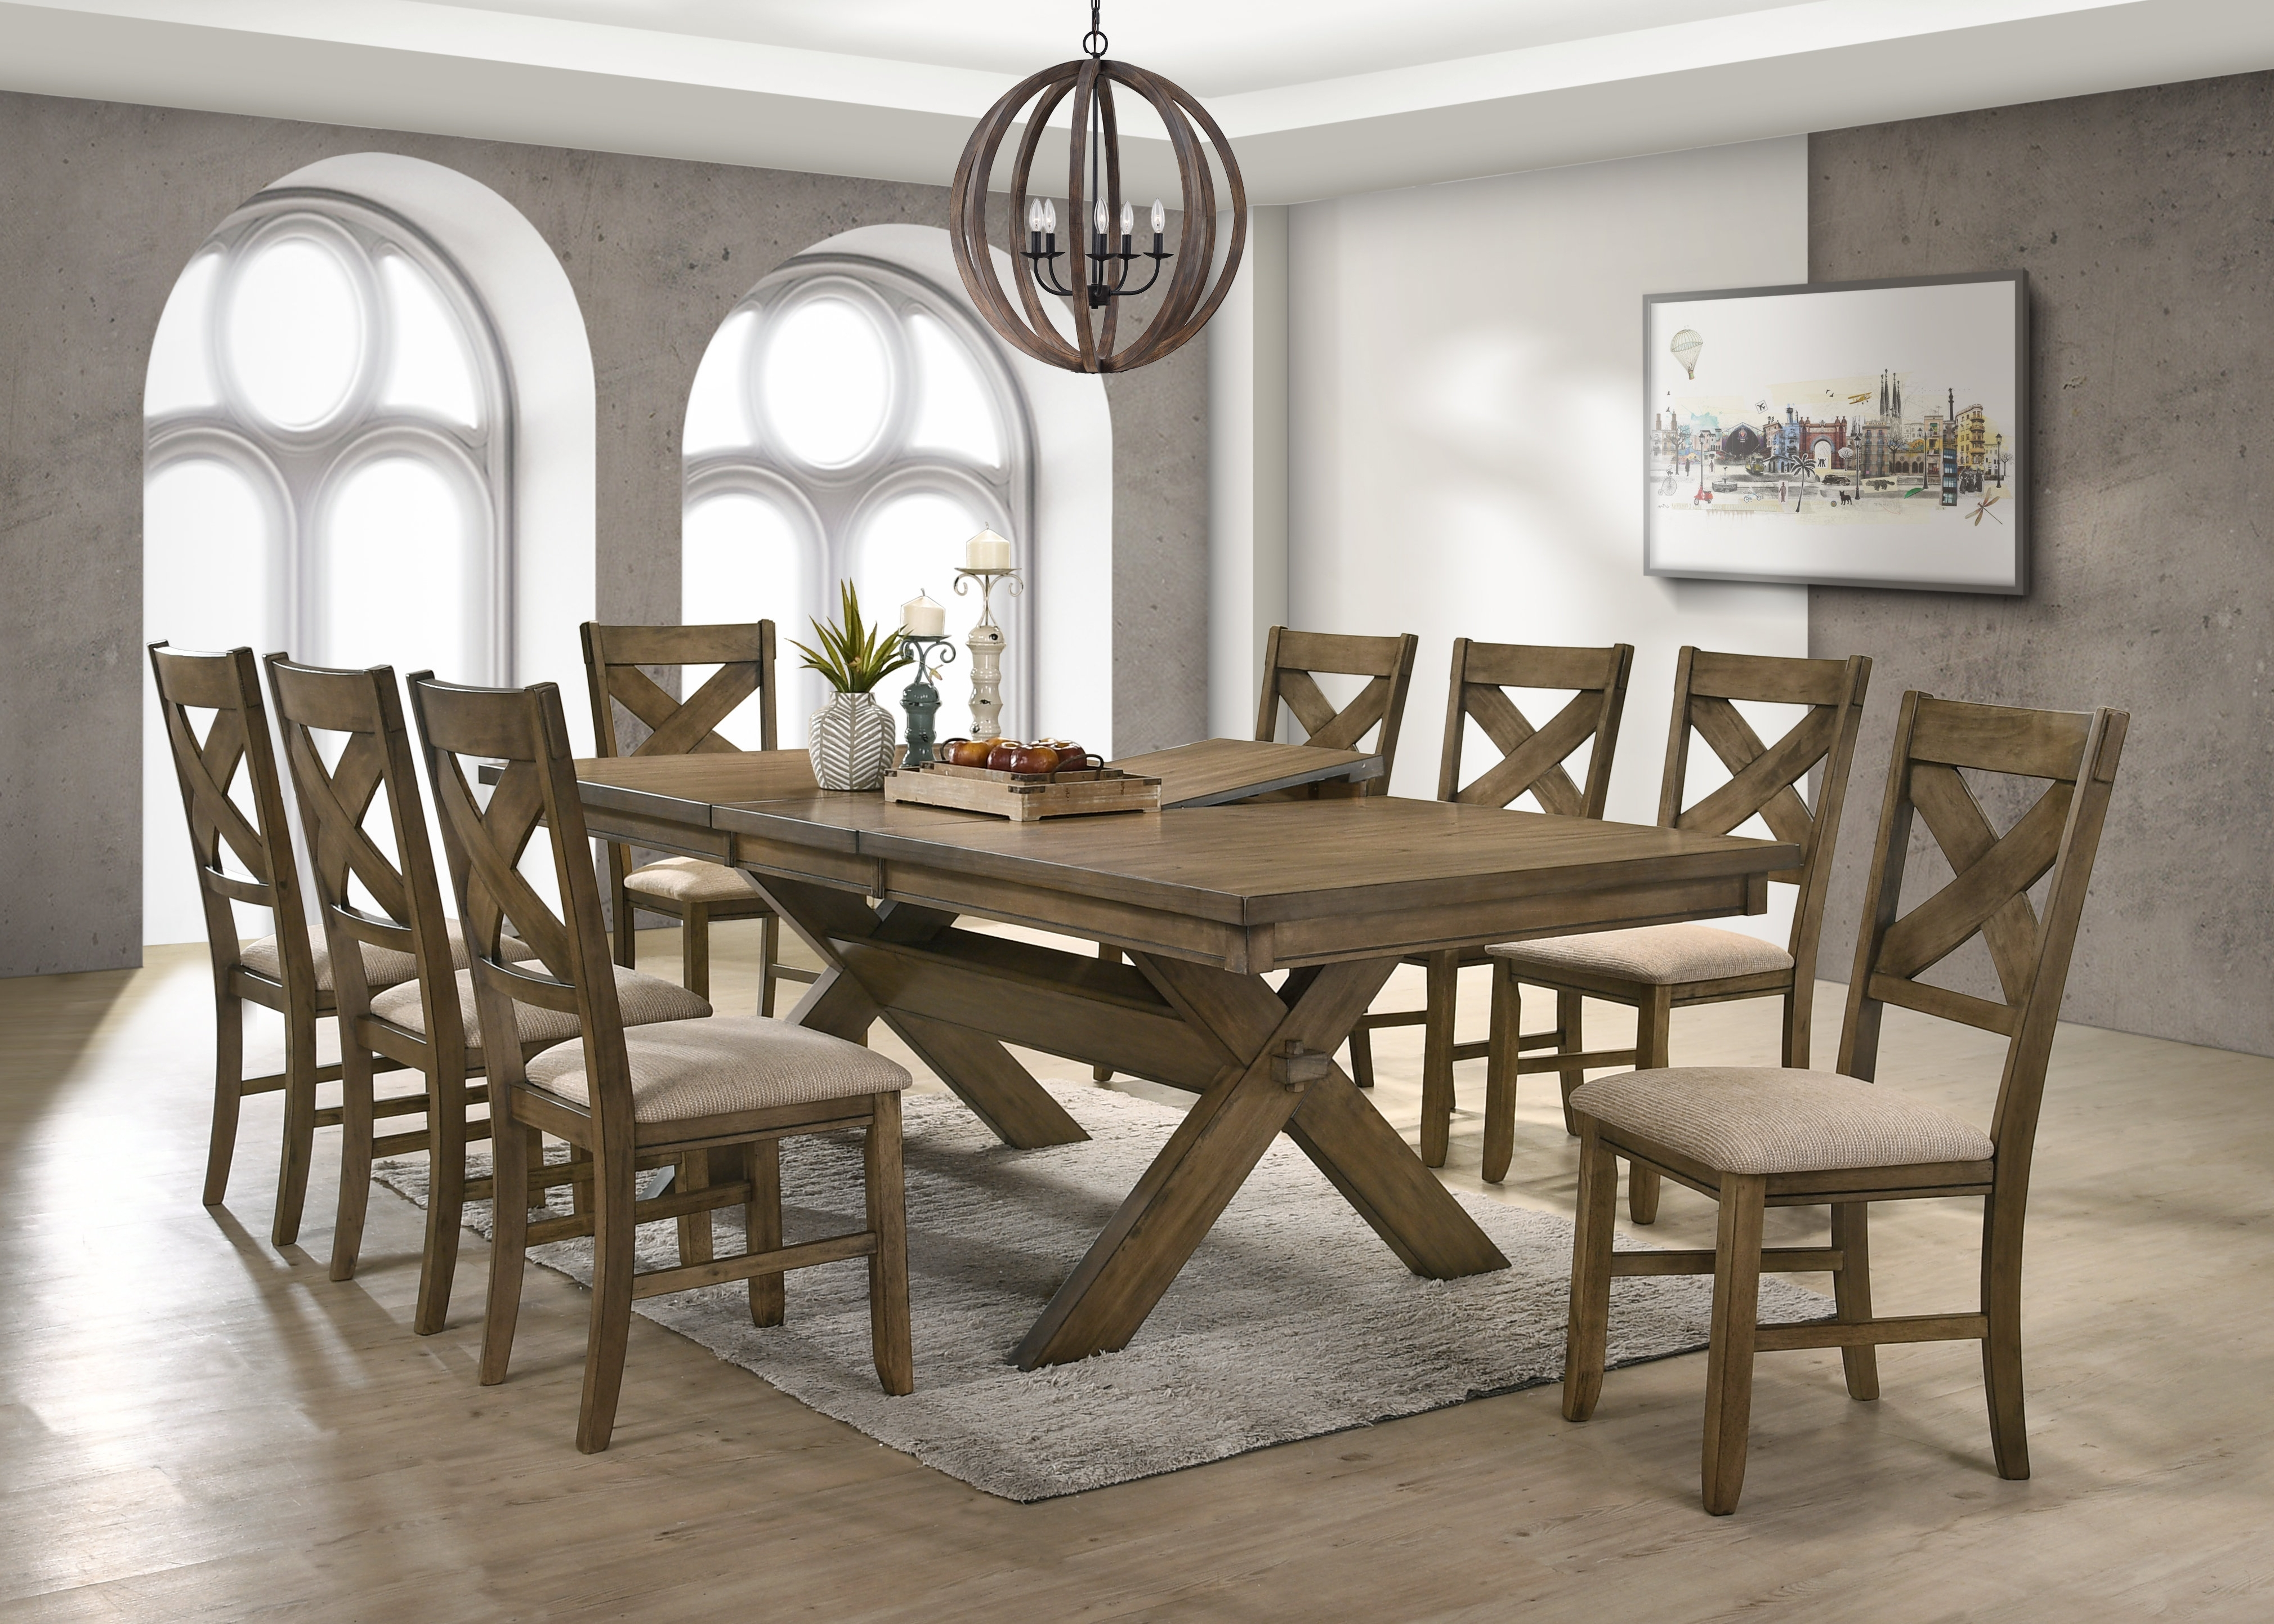 Wayfair Intended For Chandler 7 Piece Extension Dining Sets With Wood Side Chairs (View 14 of 25)